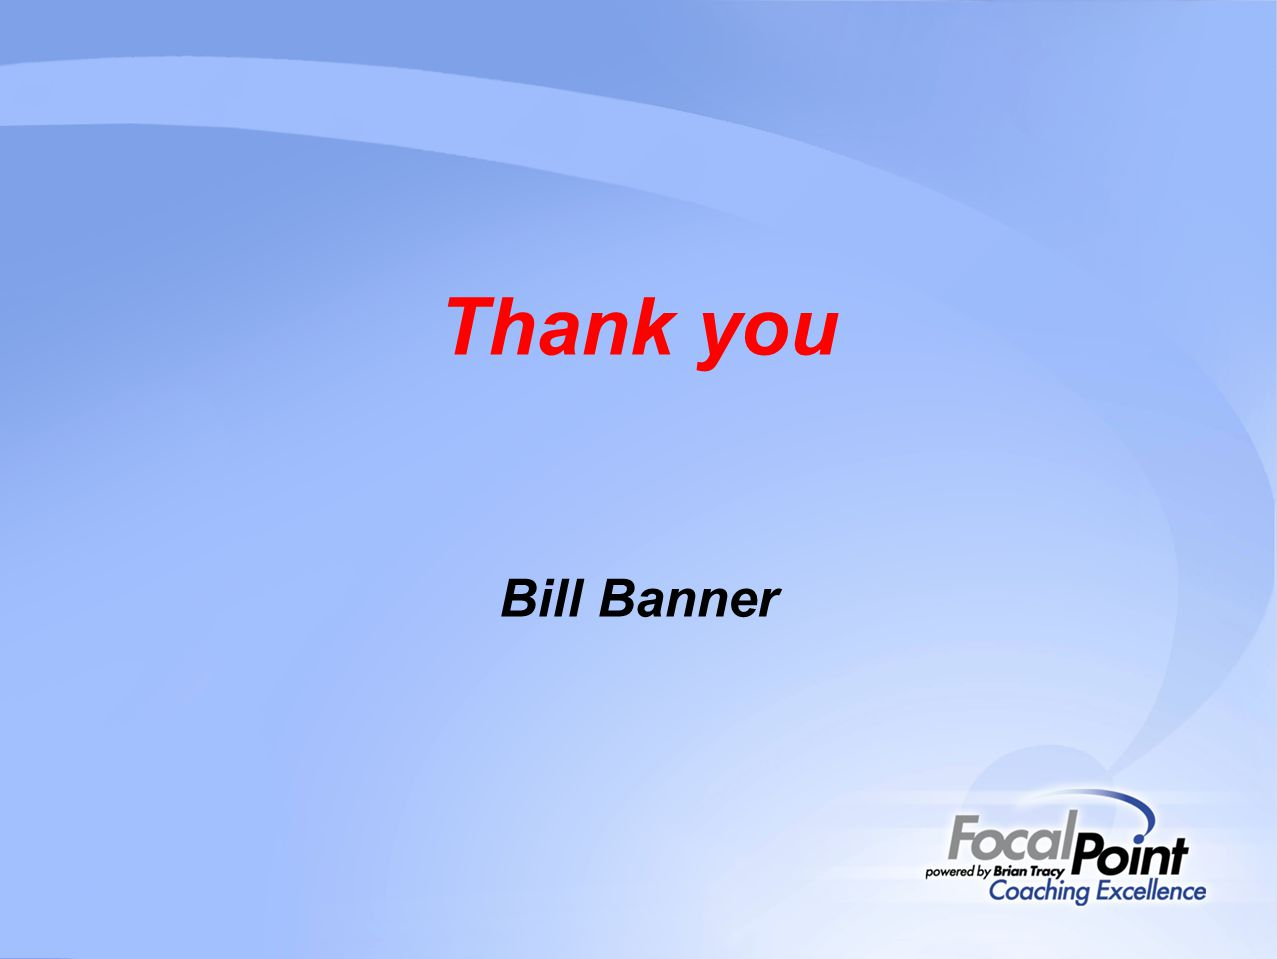 Thank you Bill Banner